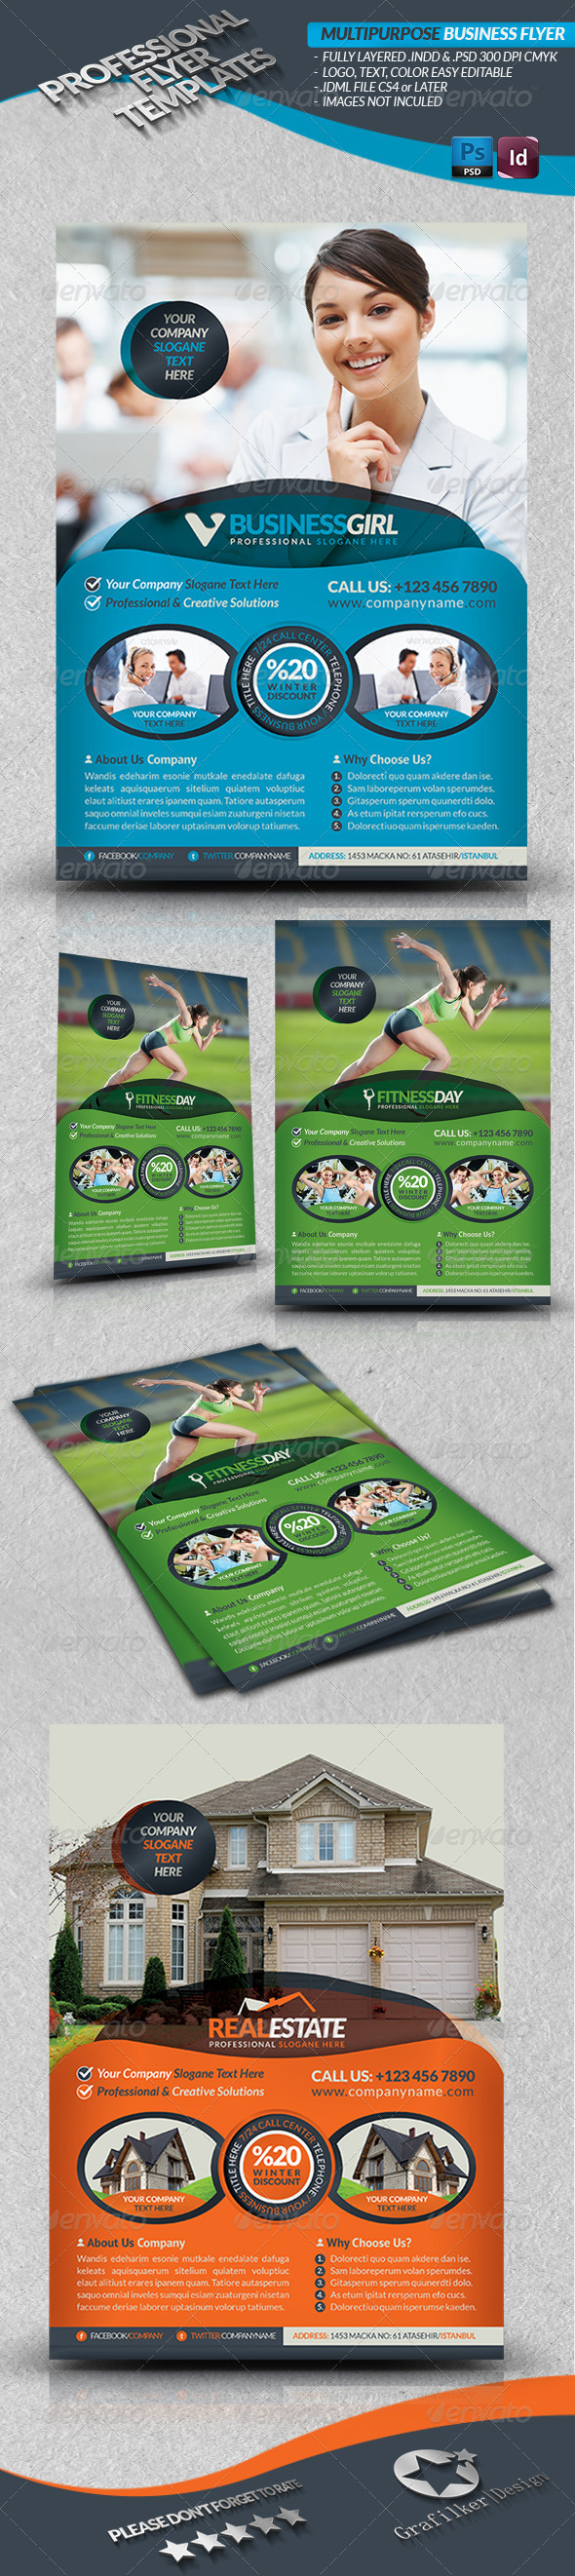 Multipurpose Business Template Flyer - Corporate Flyers